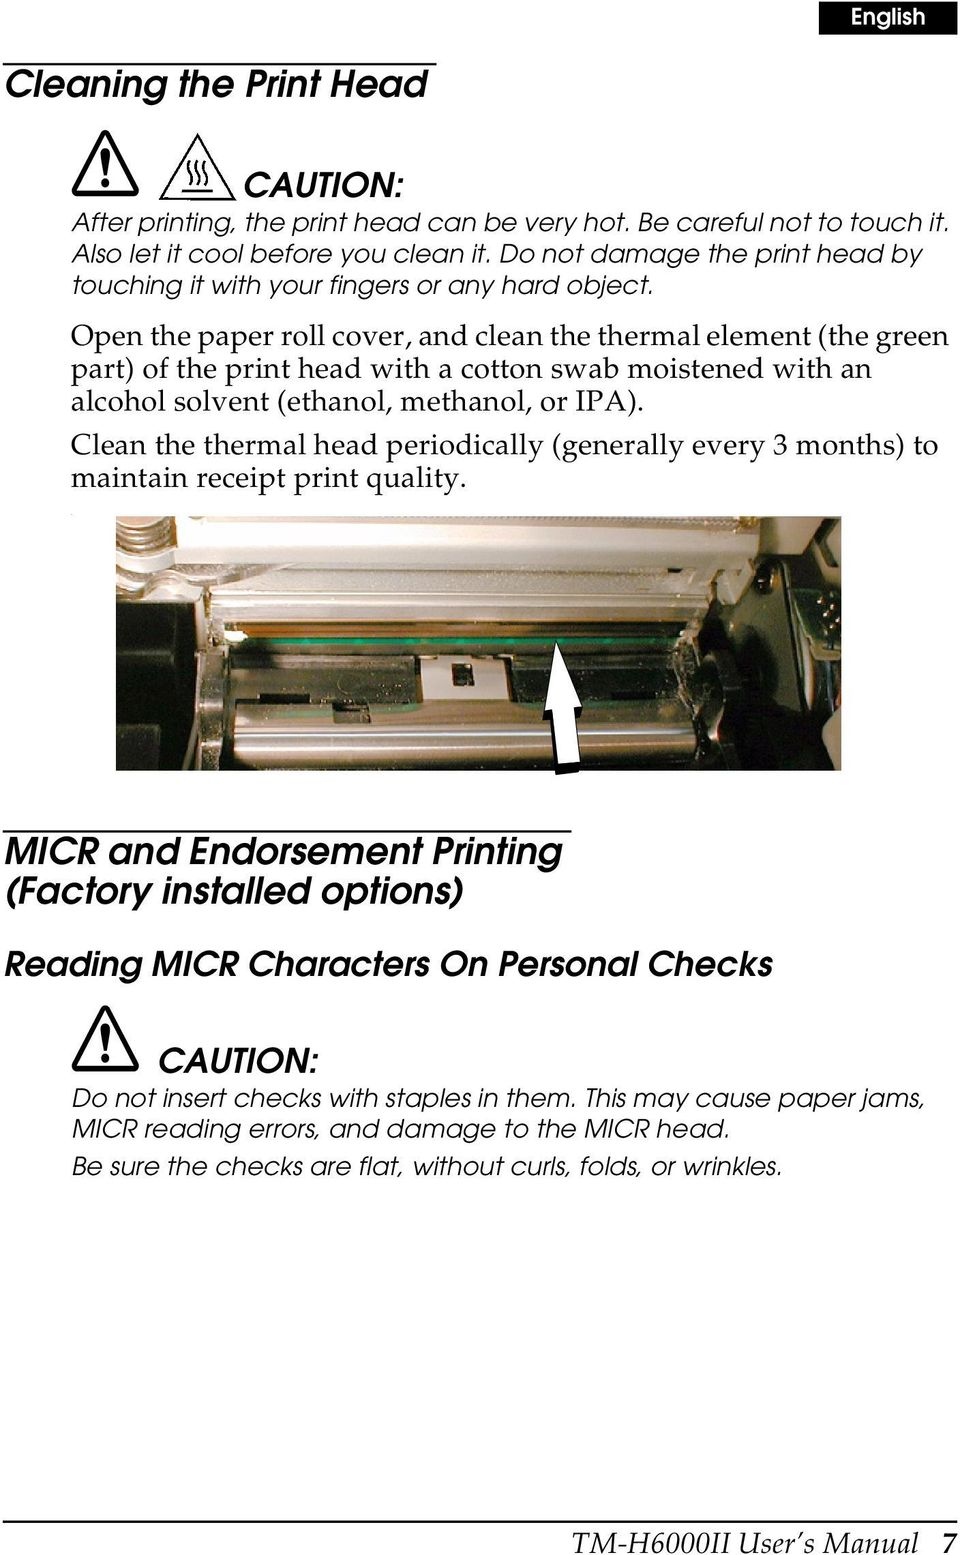 Open the paper roll cover, and clean the thermal element (the green part) of the print head with a cotton swab moistened with an alcohol solvent (ethanol, methanol, or IPA).